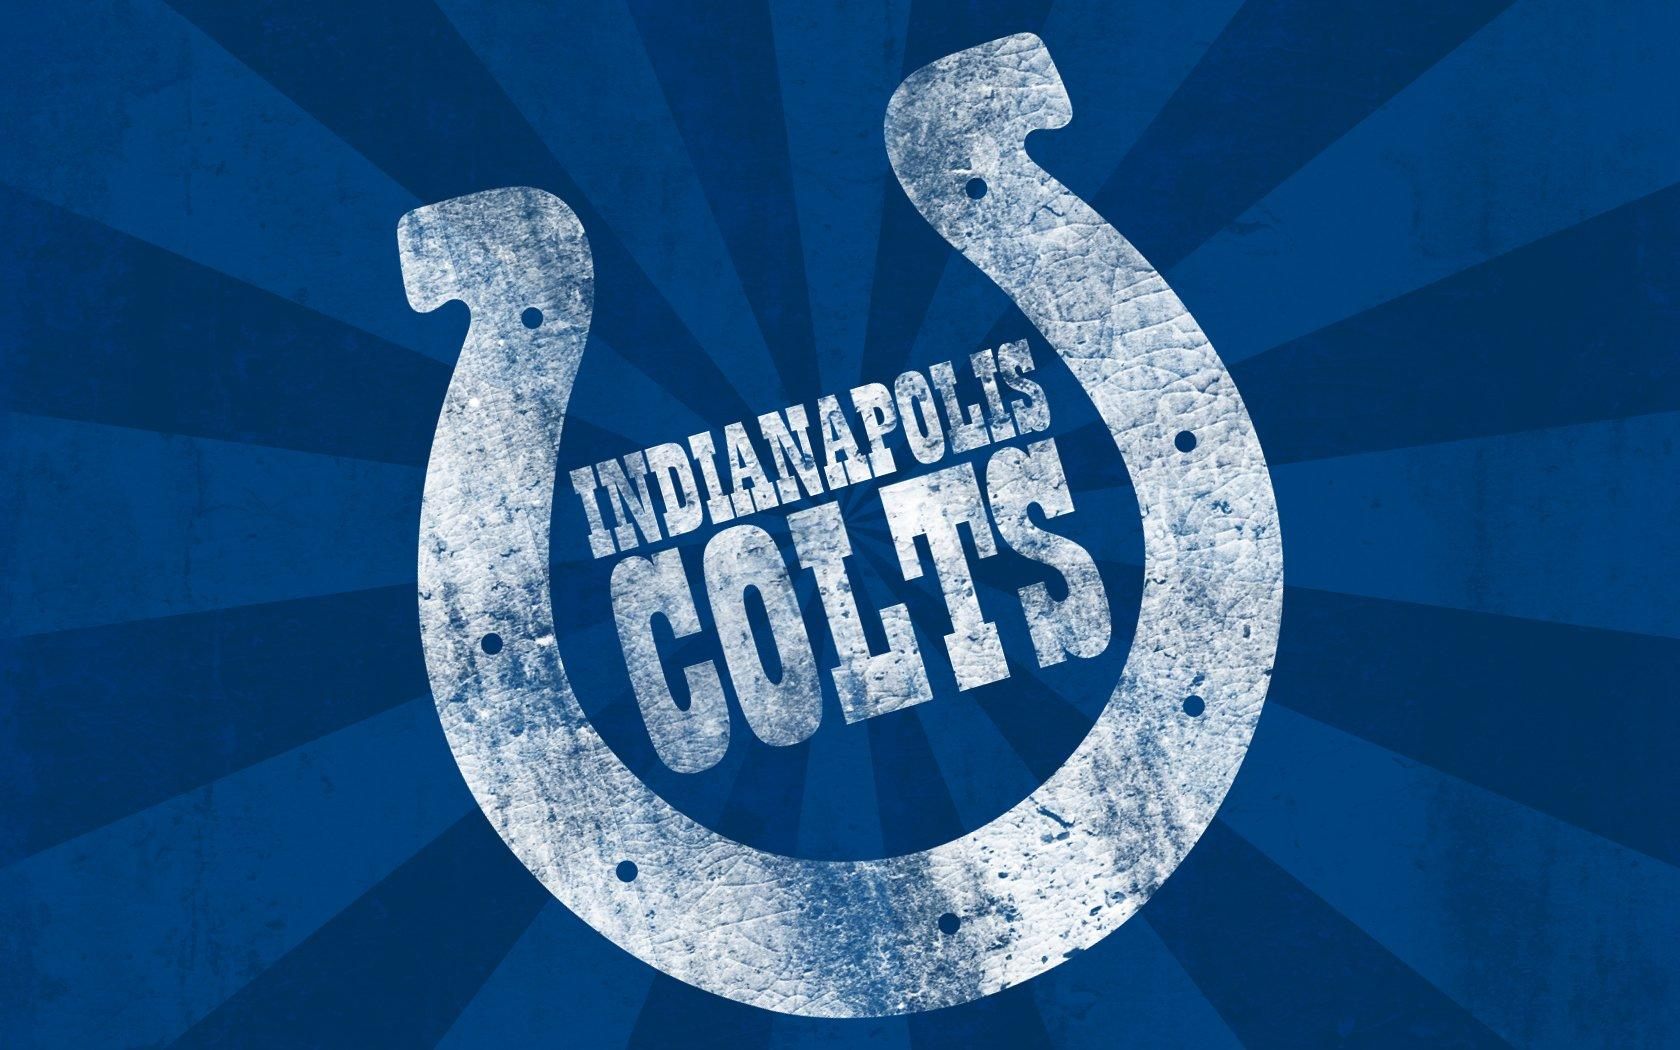 Indianapolis Colts Wallpaper 11 - 1680 X 1050 | stmed.net